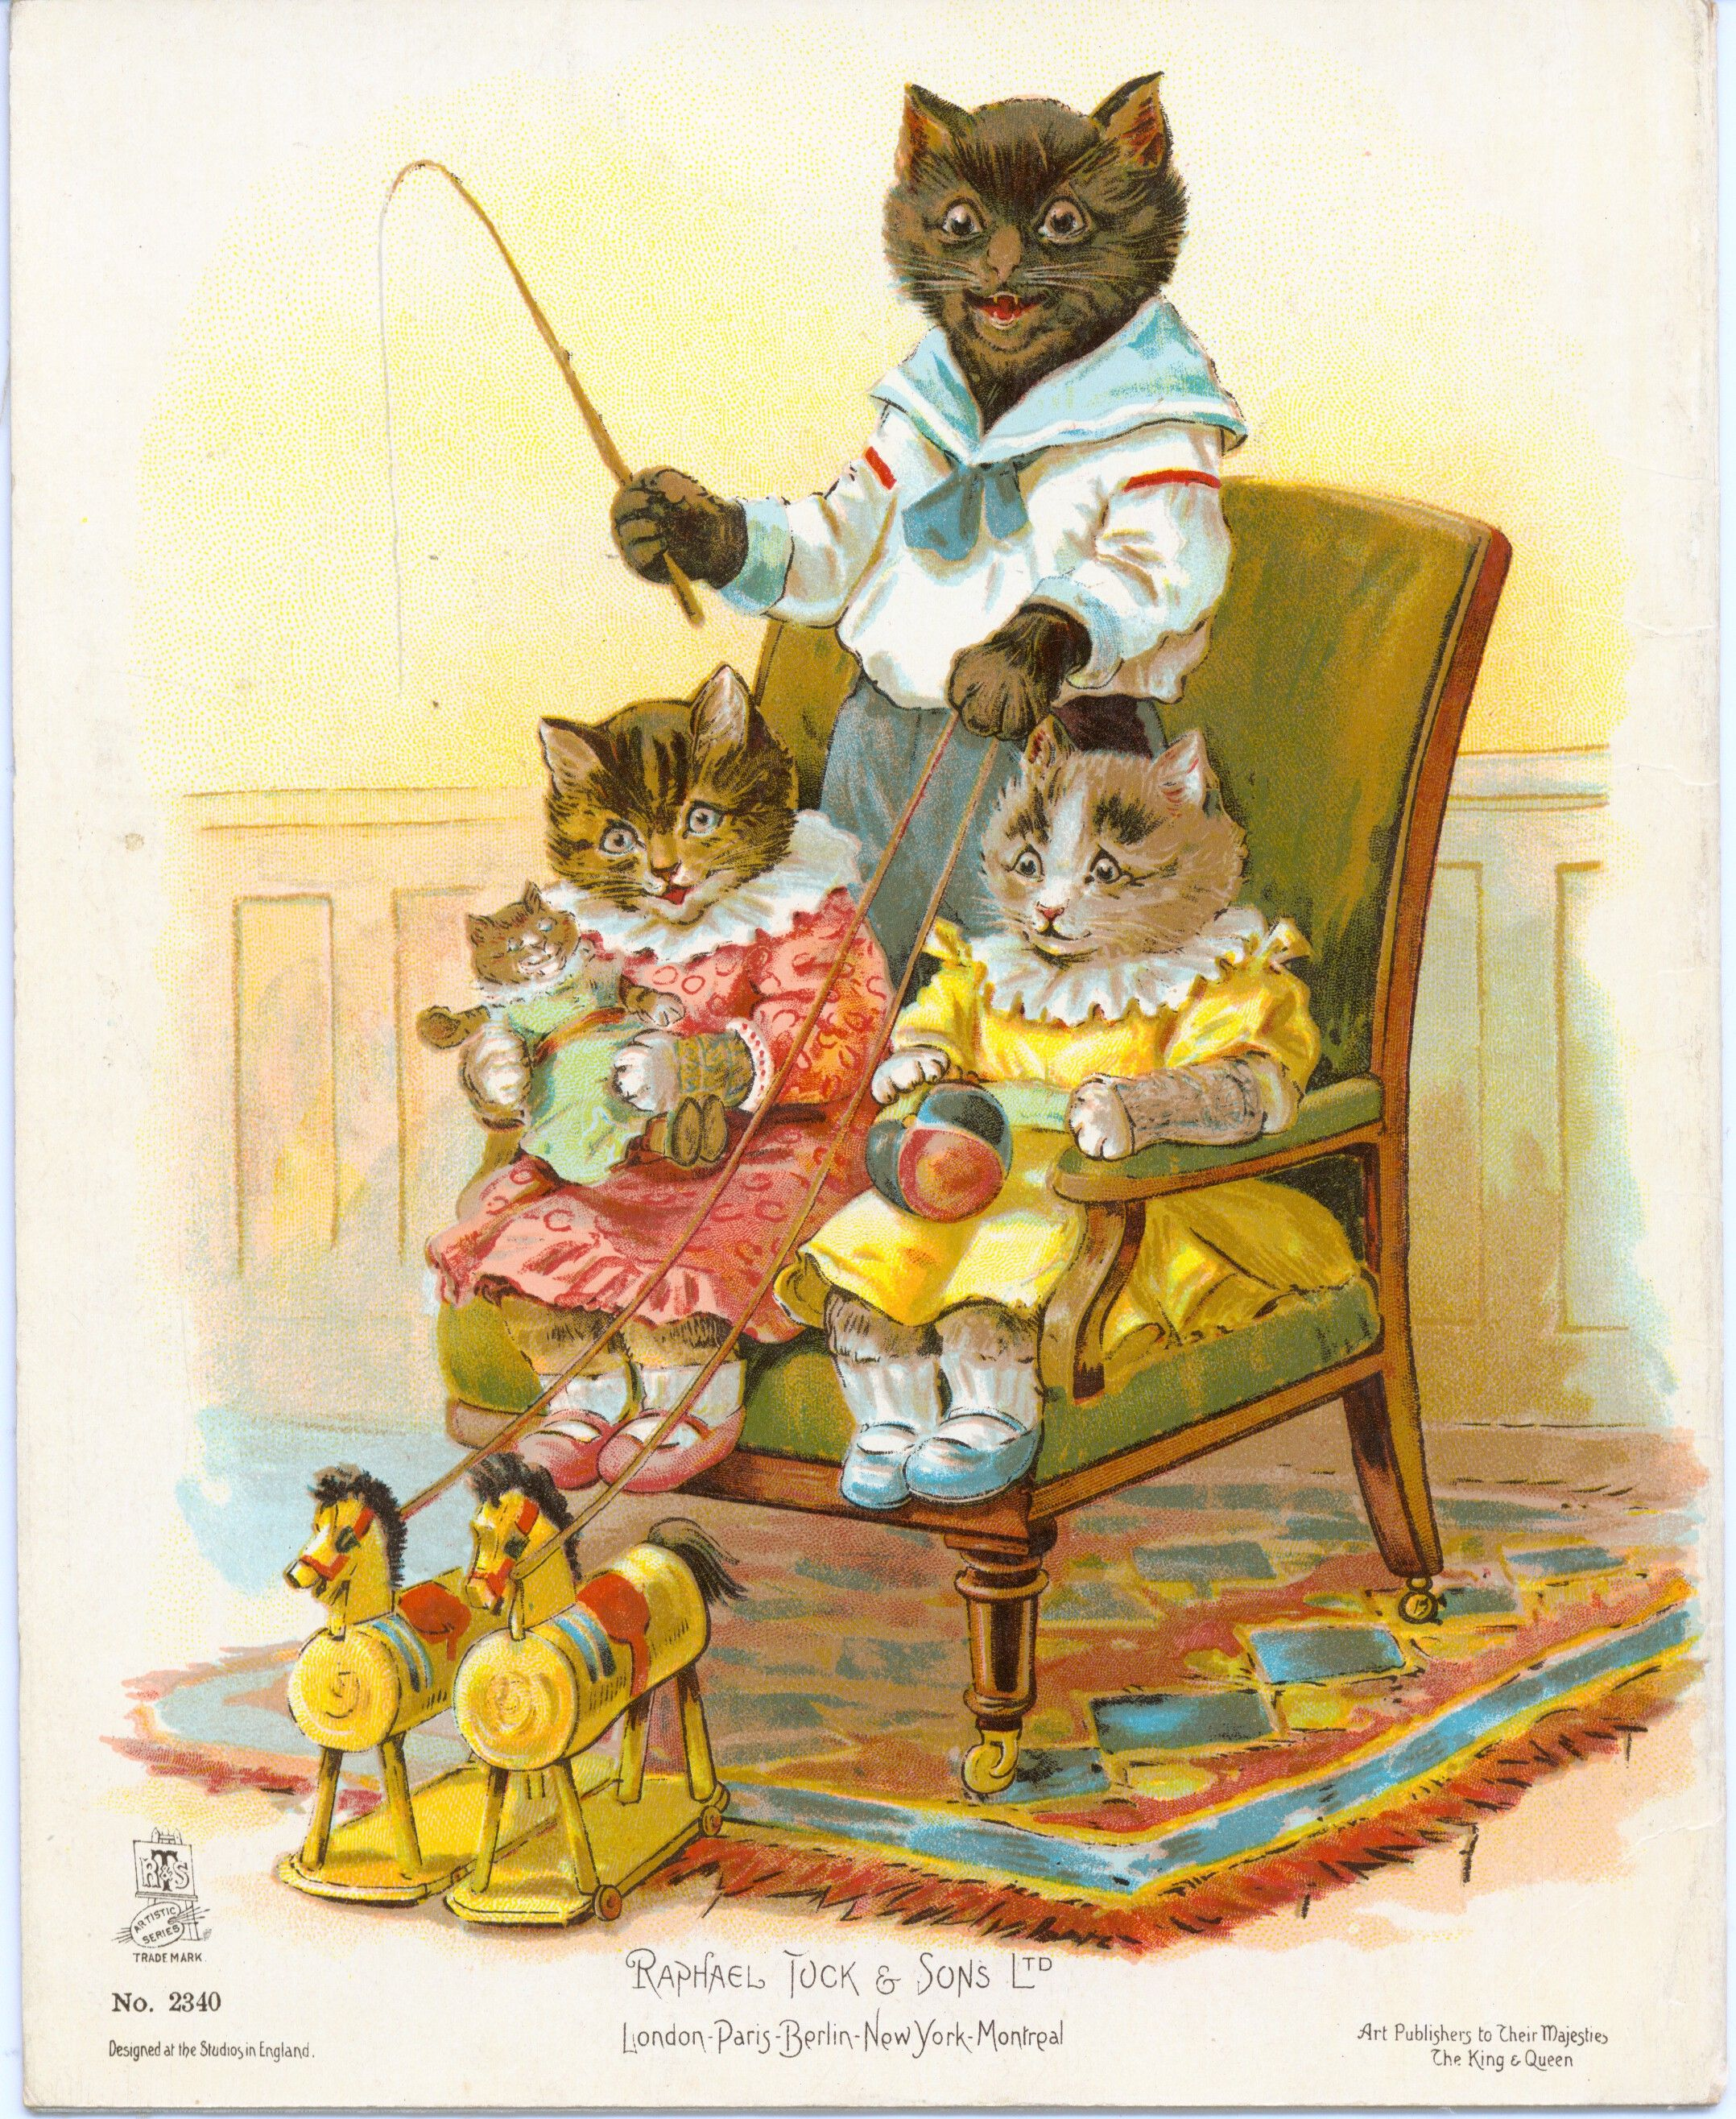 More About The Three Little Kittens Antique Raphael Tuck Book Storybook Art Cats Illustration Little Kittens